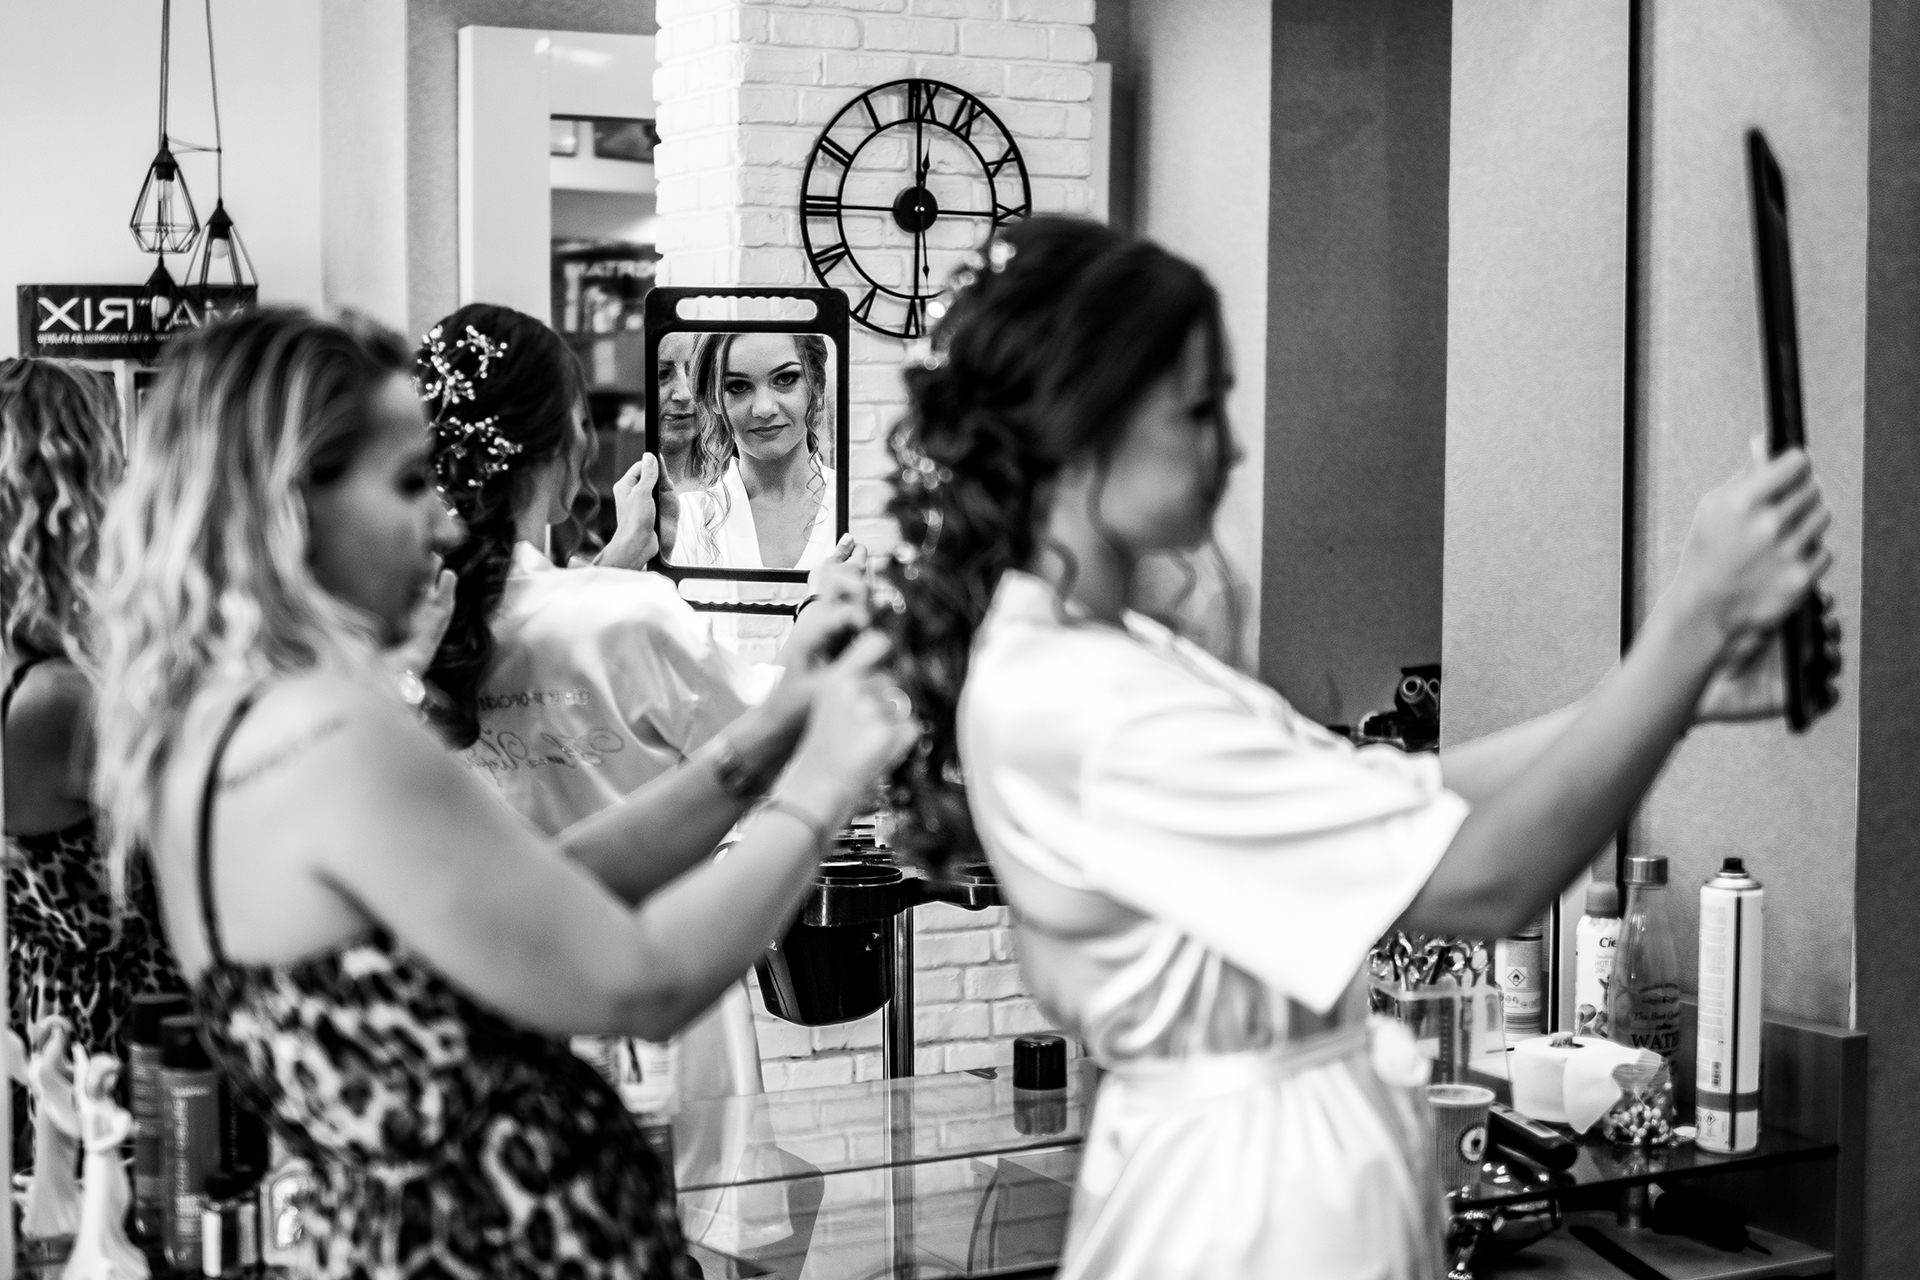 Ruse, Bulgaria Wedding Bridal Image | As she prepares for her wedding ceremony, the bride reflects